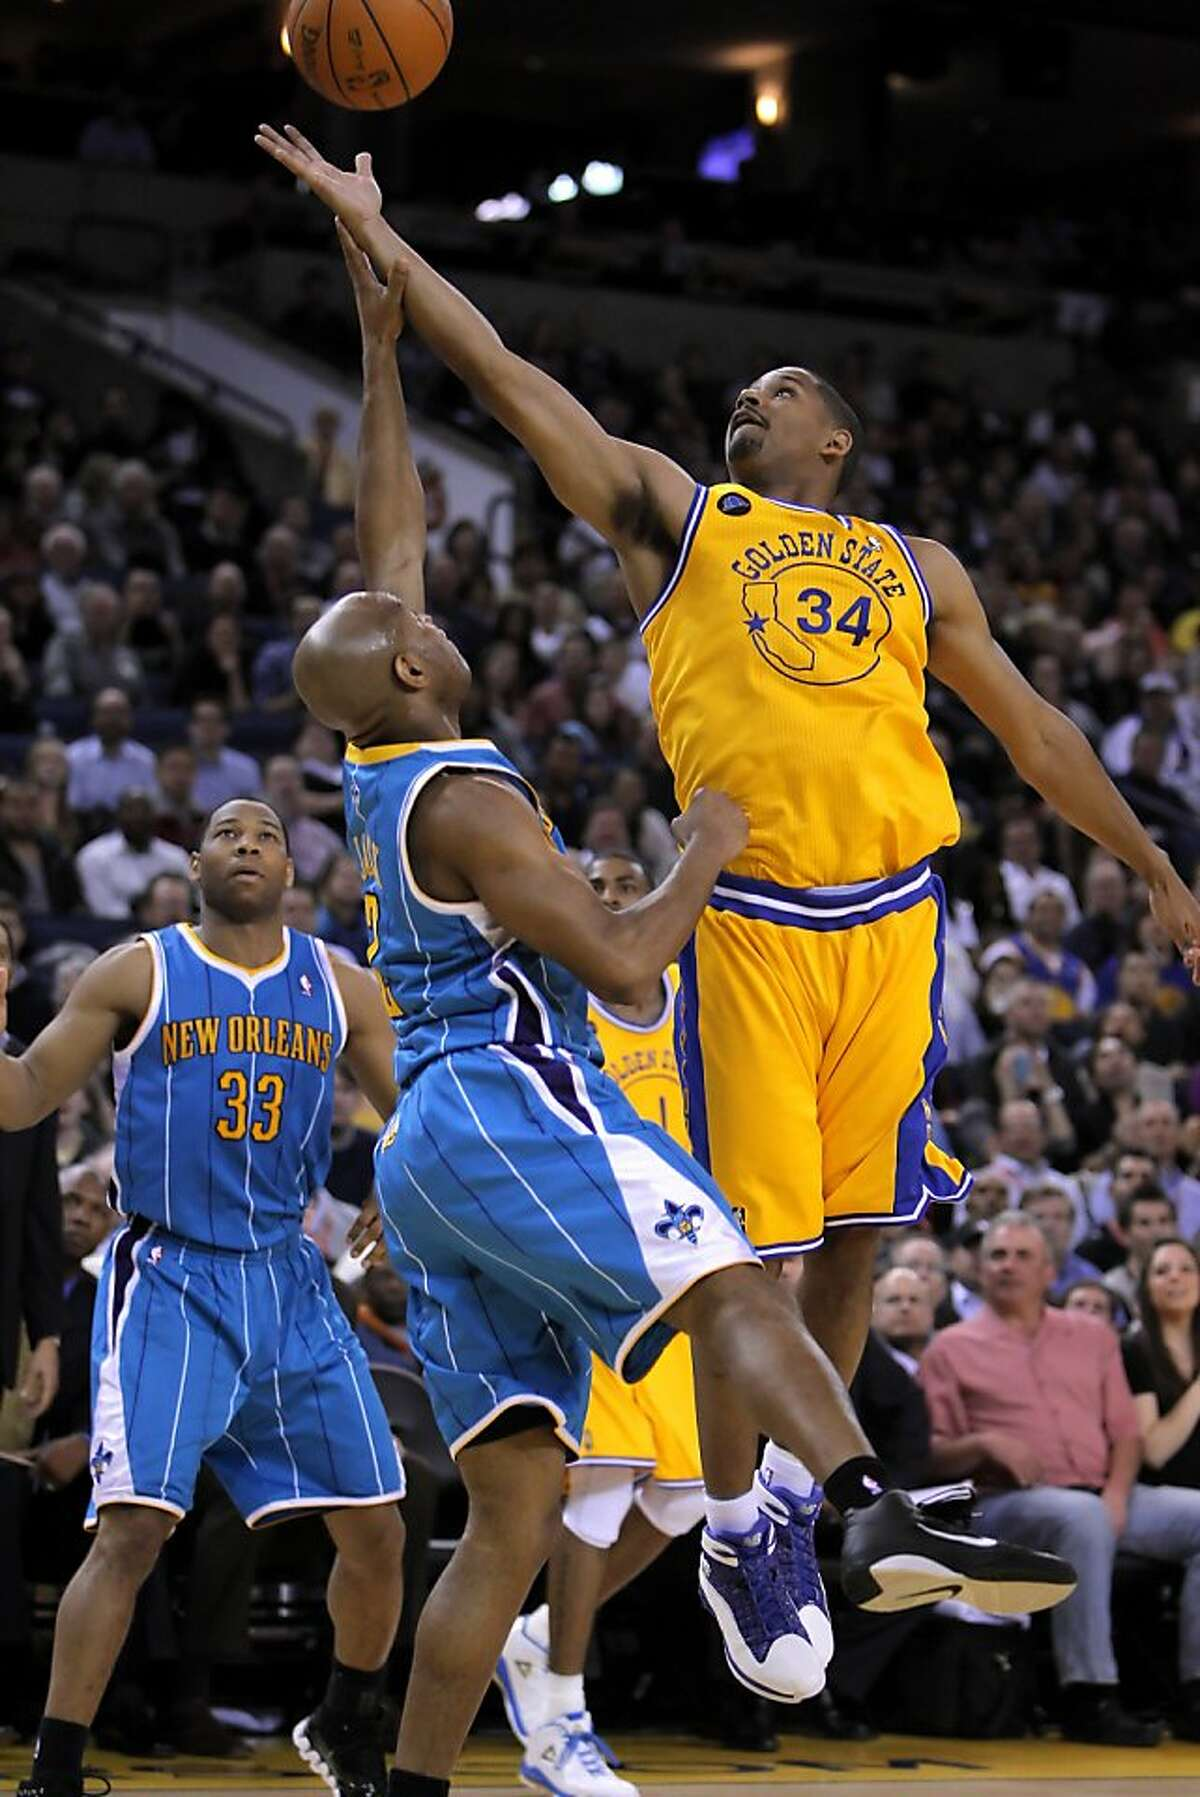 Warriors's Charlie Bell tries to bring in a rebound in the first half. The Golden State Warriors played the New Orleans Hornets at Oracle Arena in Oakland, Calif., on Tuesday, February 15, 2011.